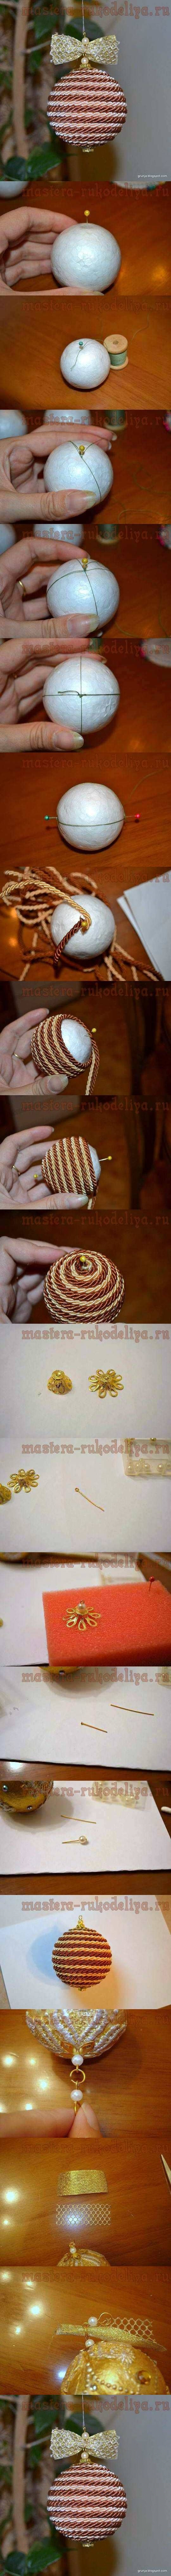 DIY Ball of String: